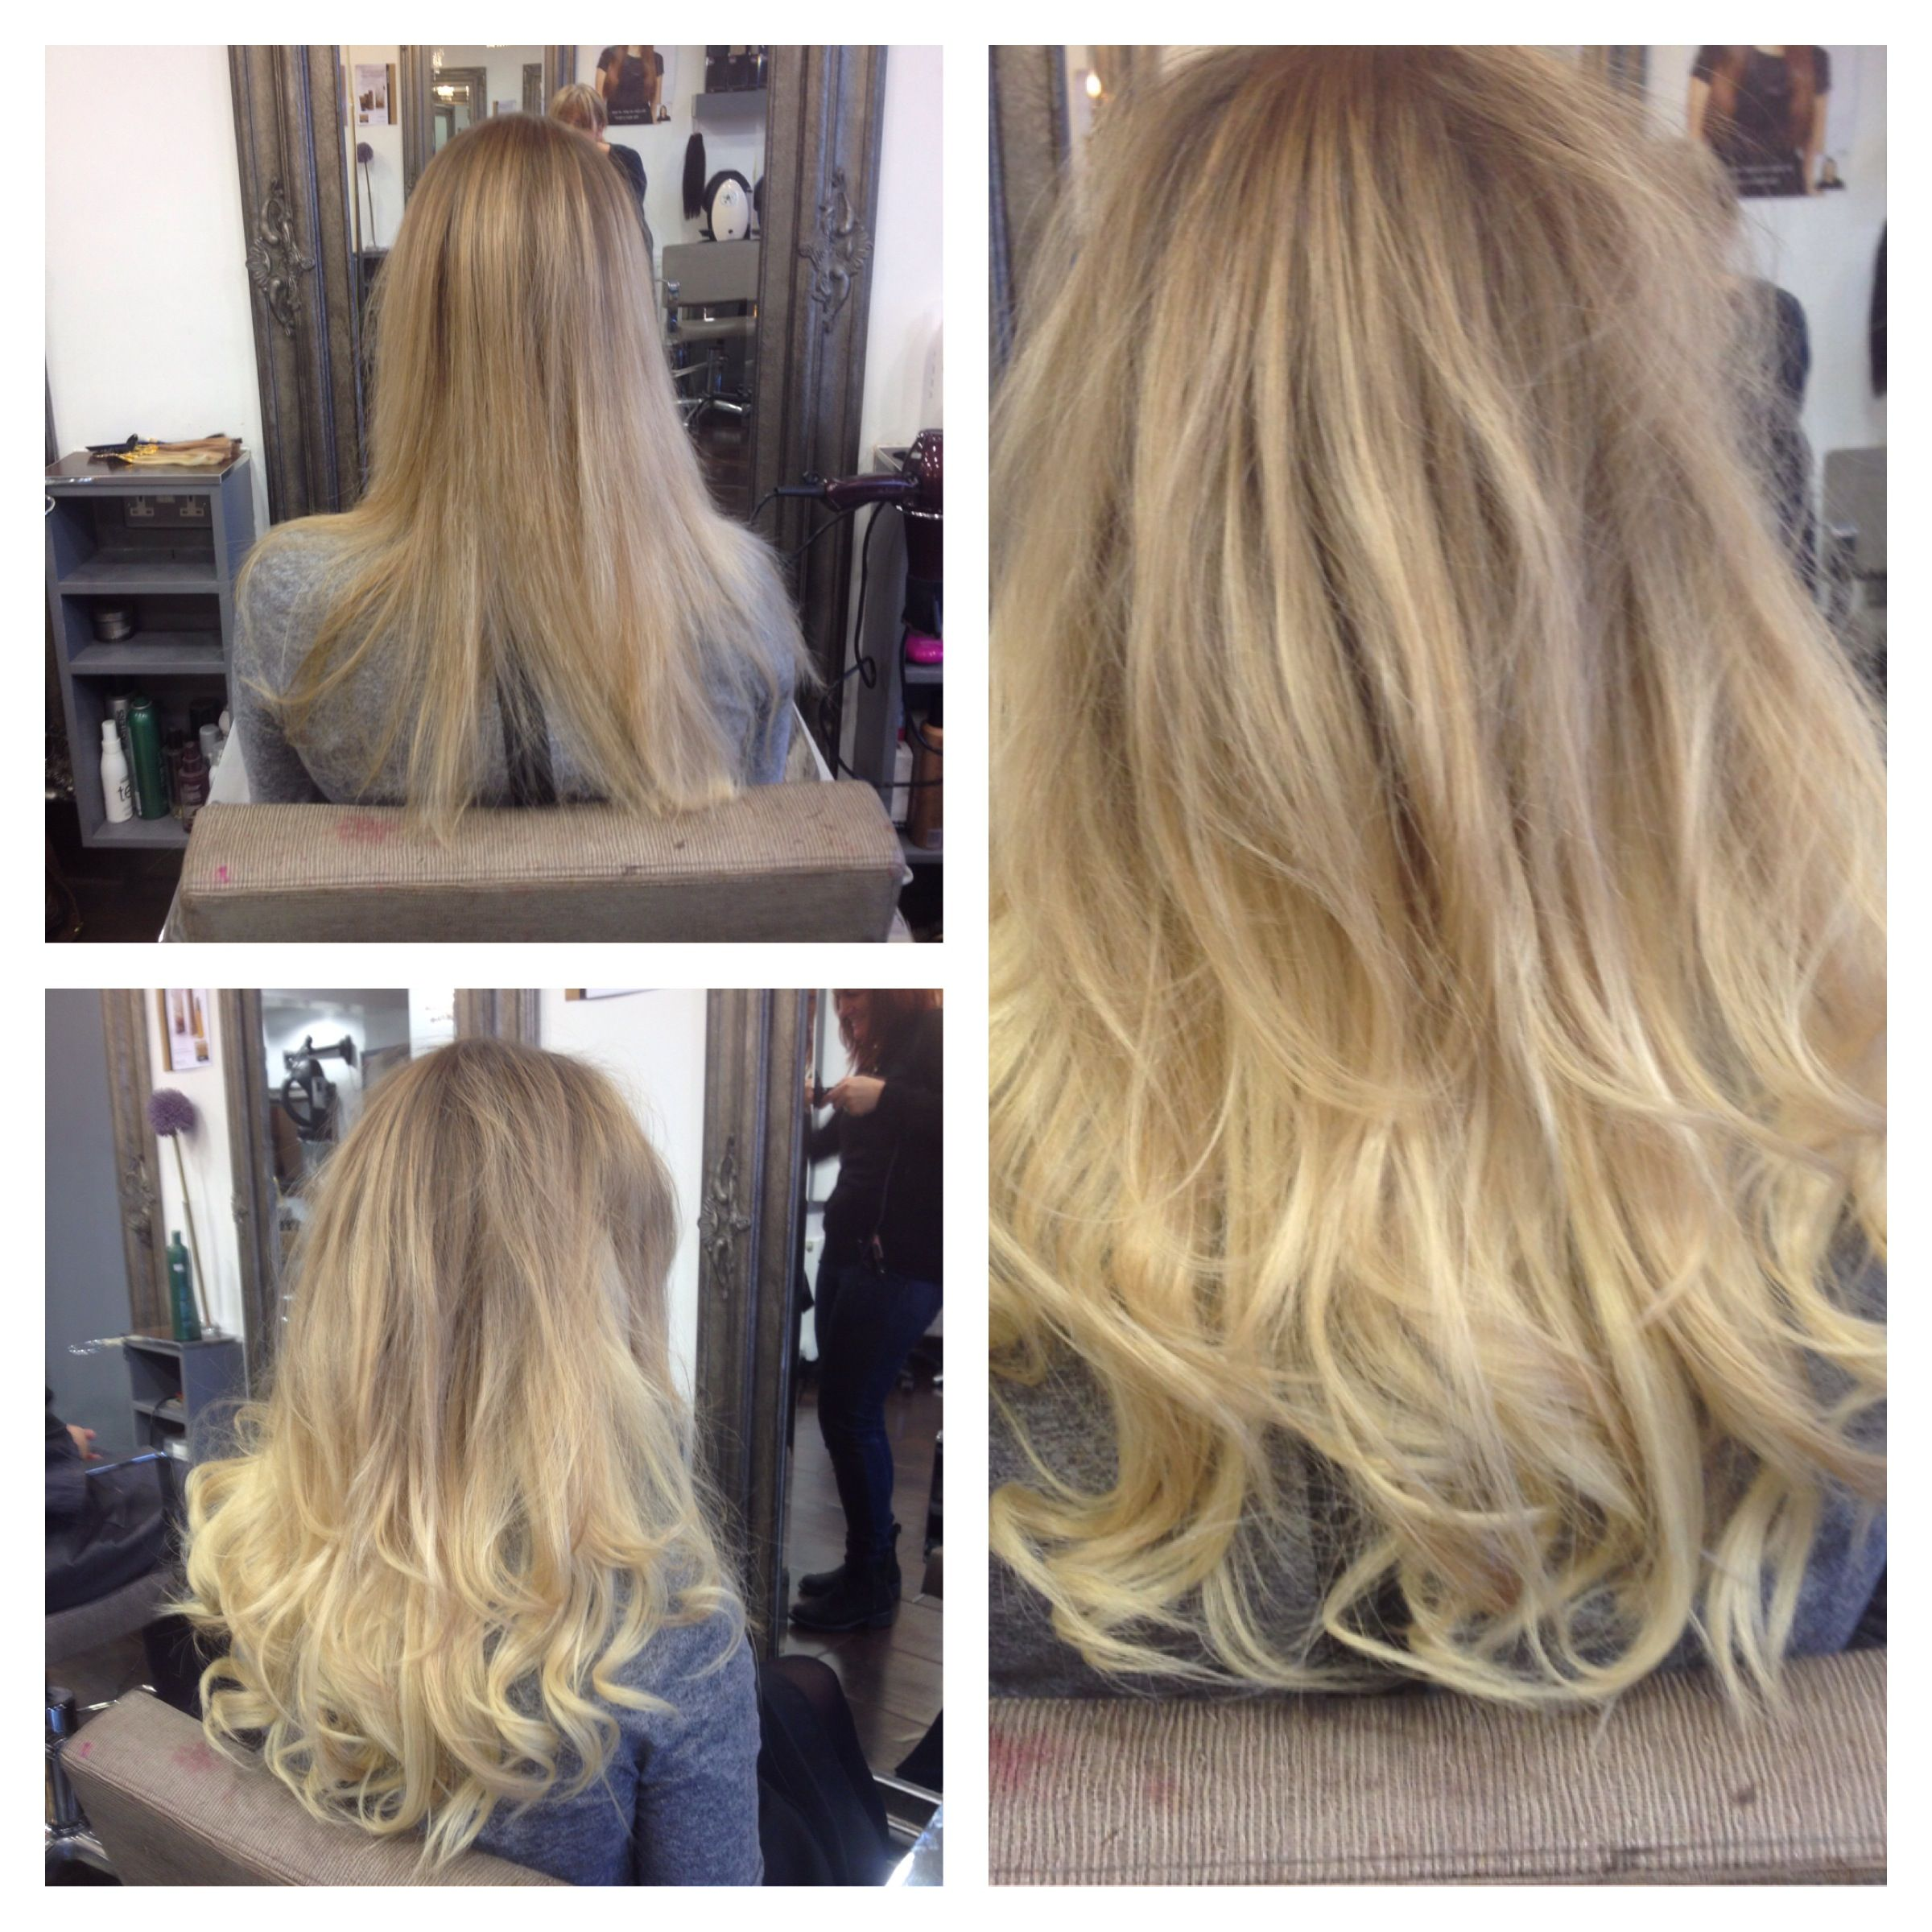 Big hugs to the team at colour lounge who recently styled a golden big hugs to the team at colour lounge who recently styled a golden blonde halo for halo hair extensionsbefore pmusecretfo Gallery